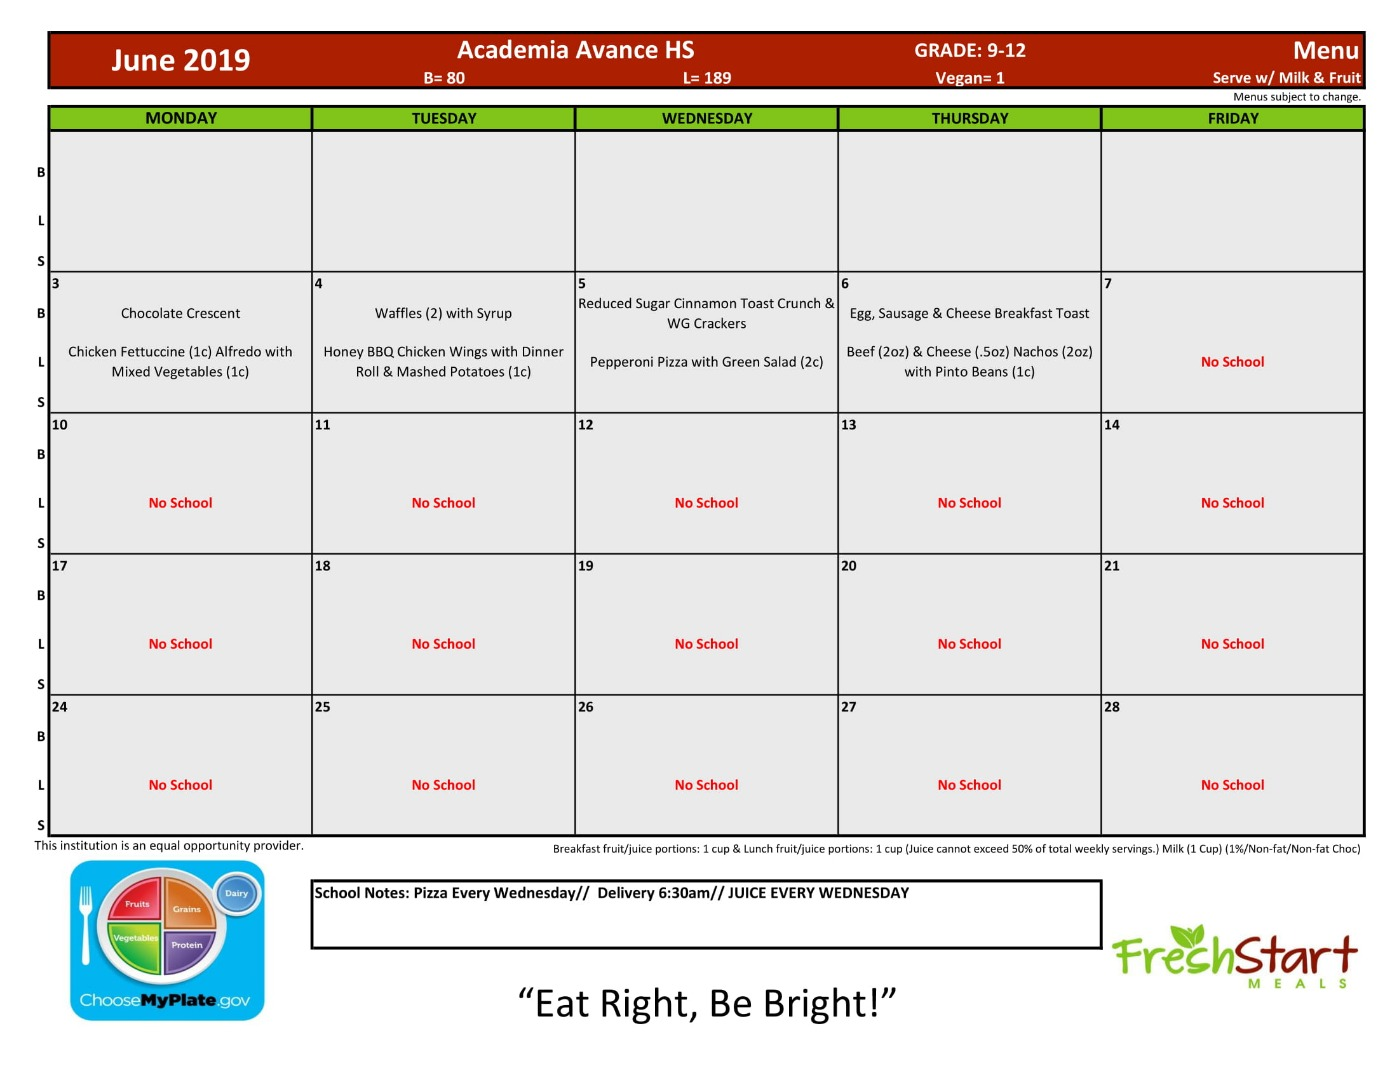 Lunch Menu for June 2019